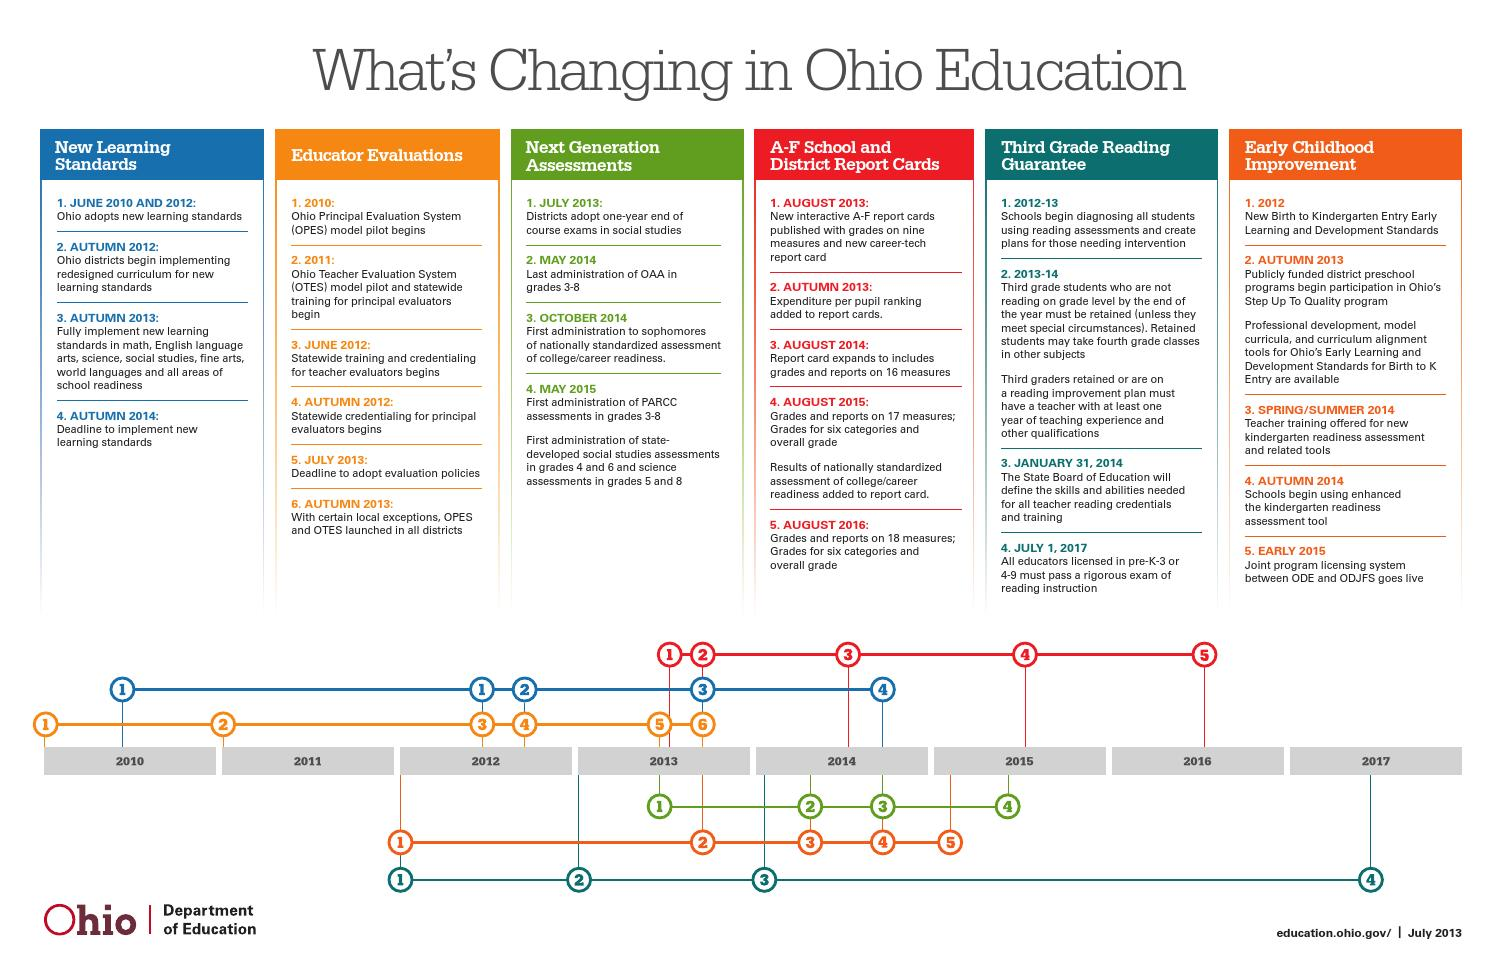 What's Changing in Ohio Education? by Norwalk City School